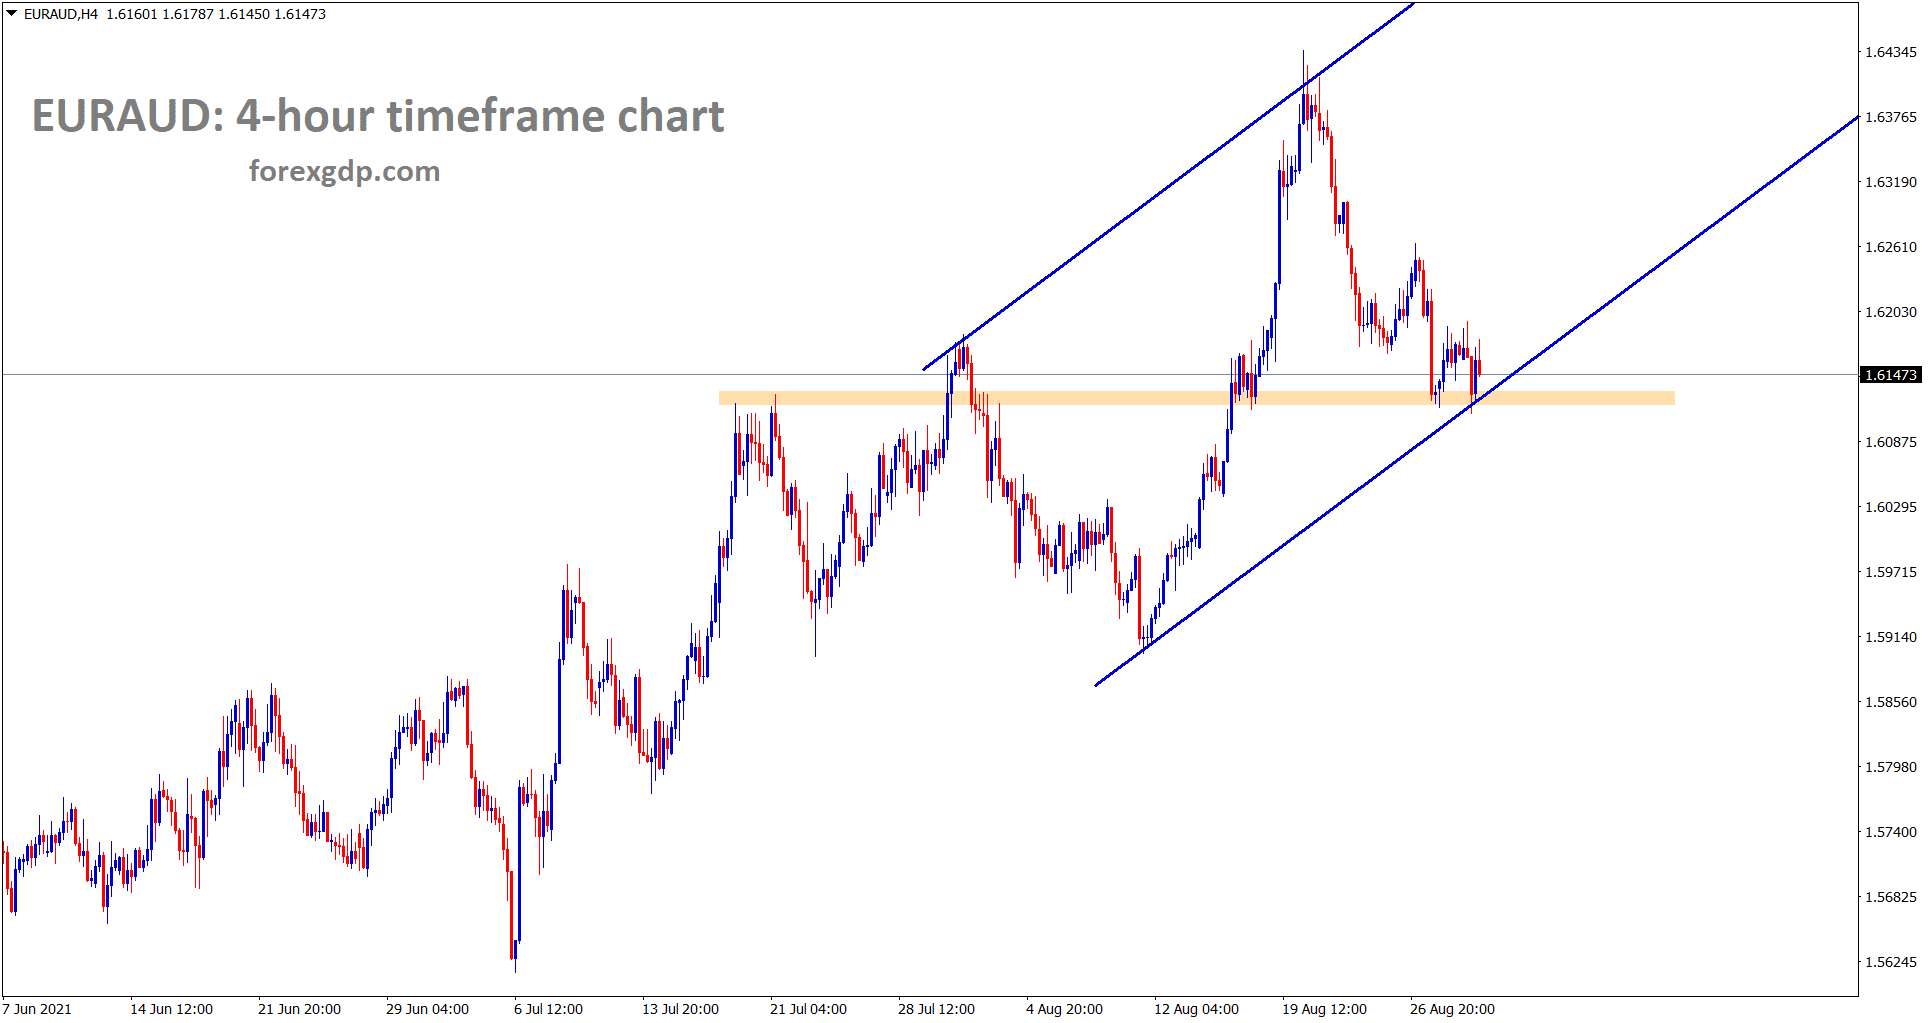 EURAUD is standing at the higher low area of the uptrend line